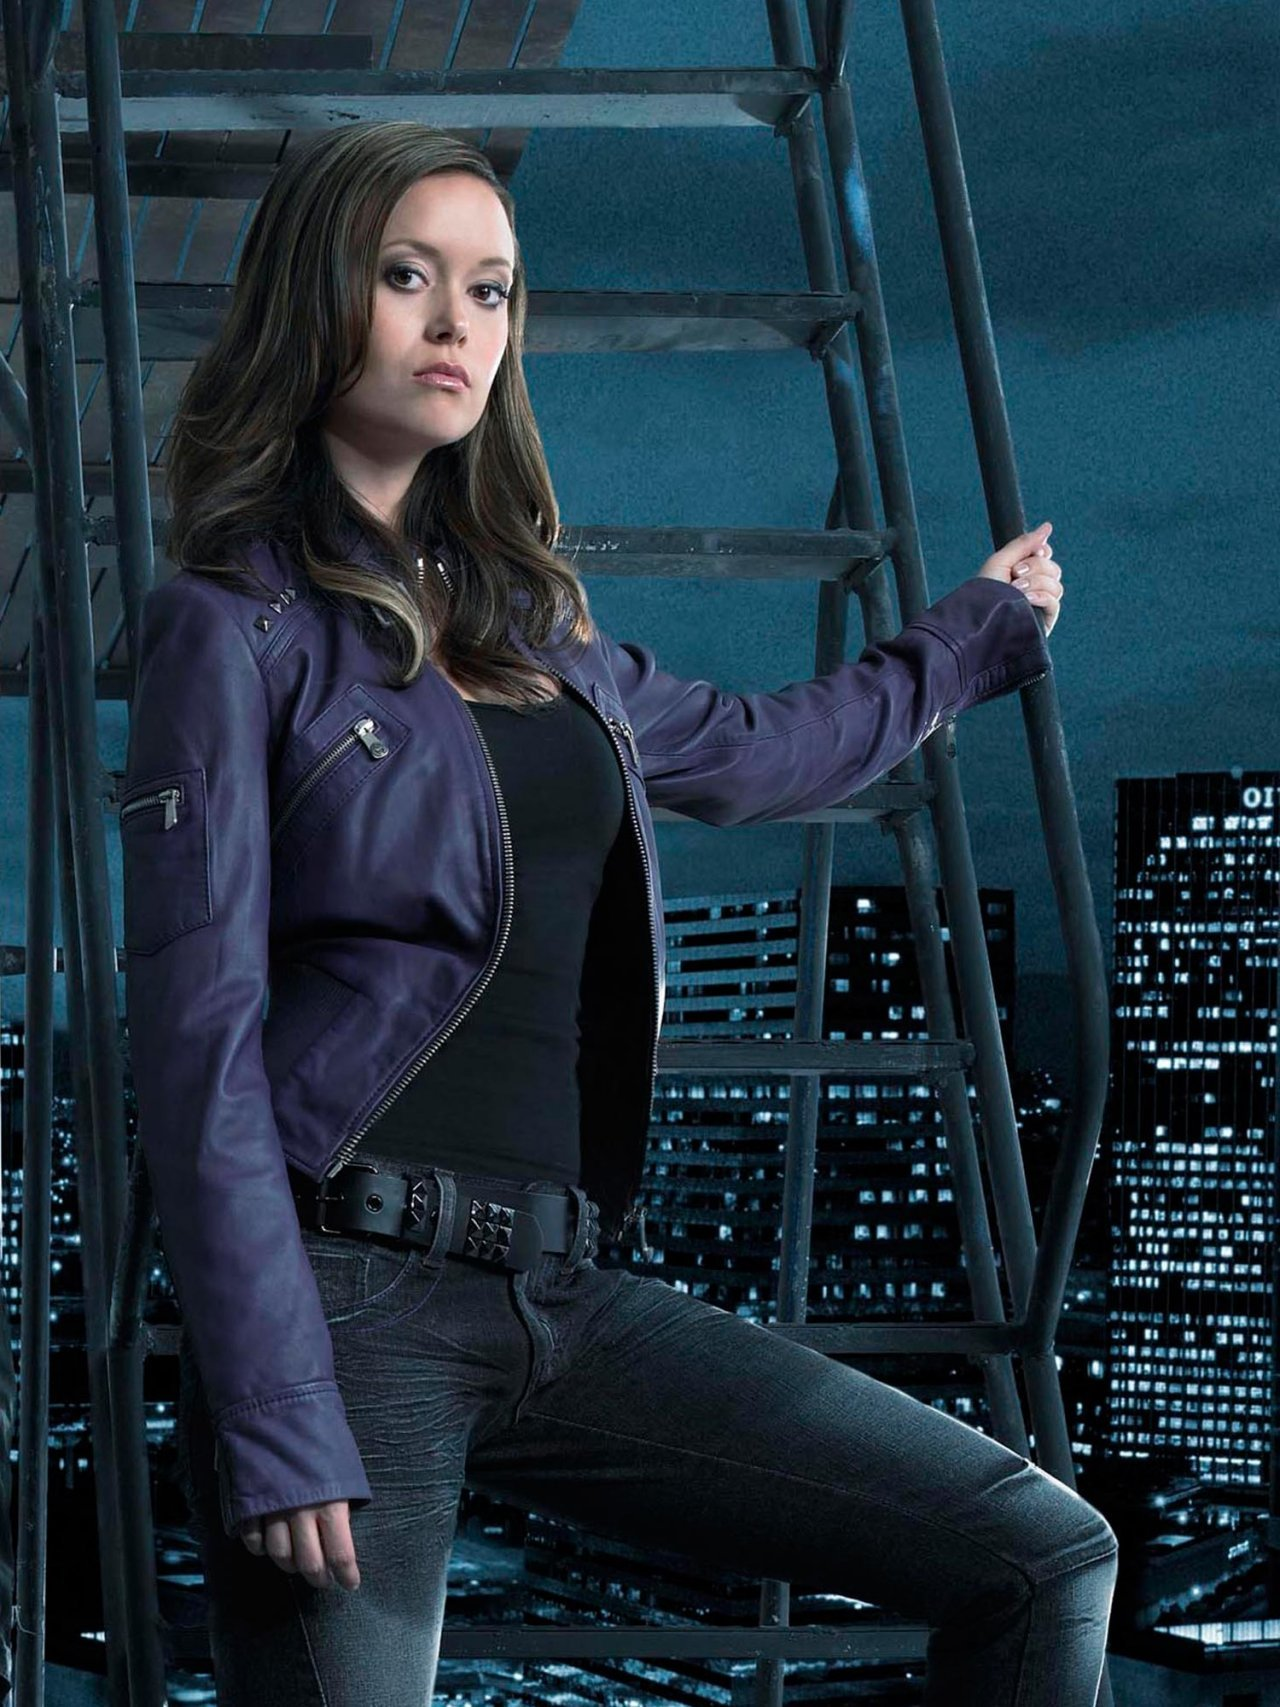 Cameron Celebrity summer glau HD Wallpaper